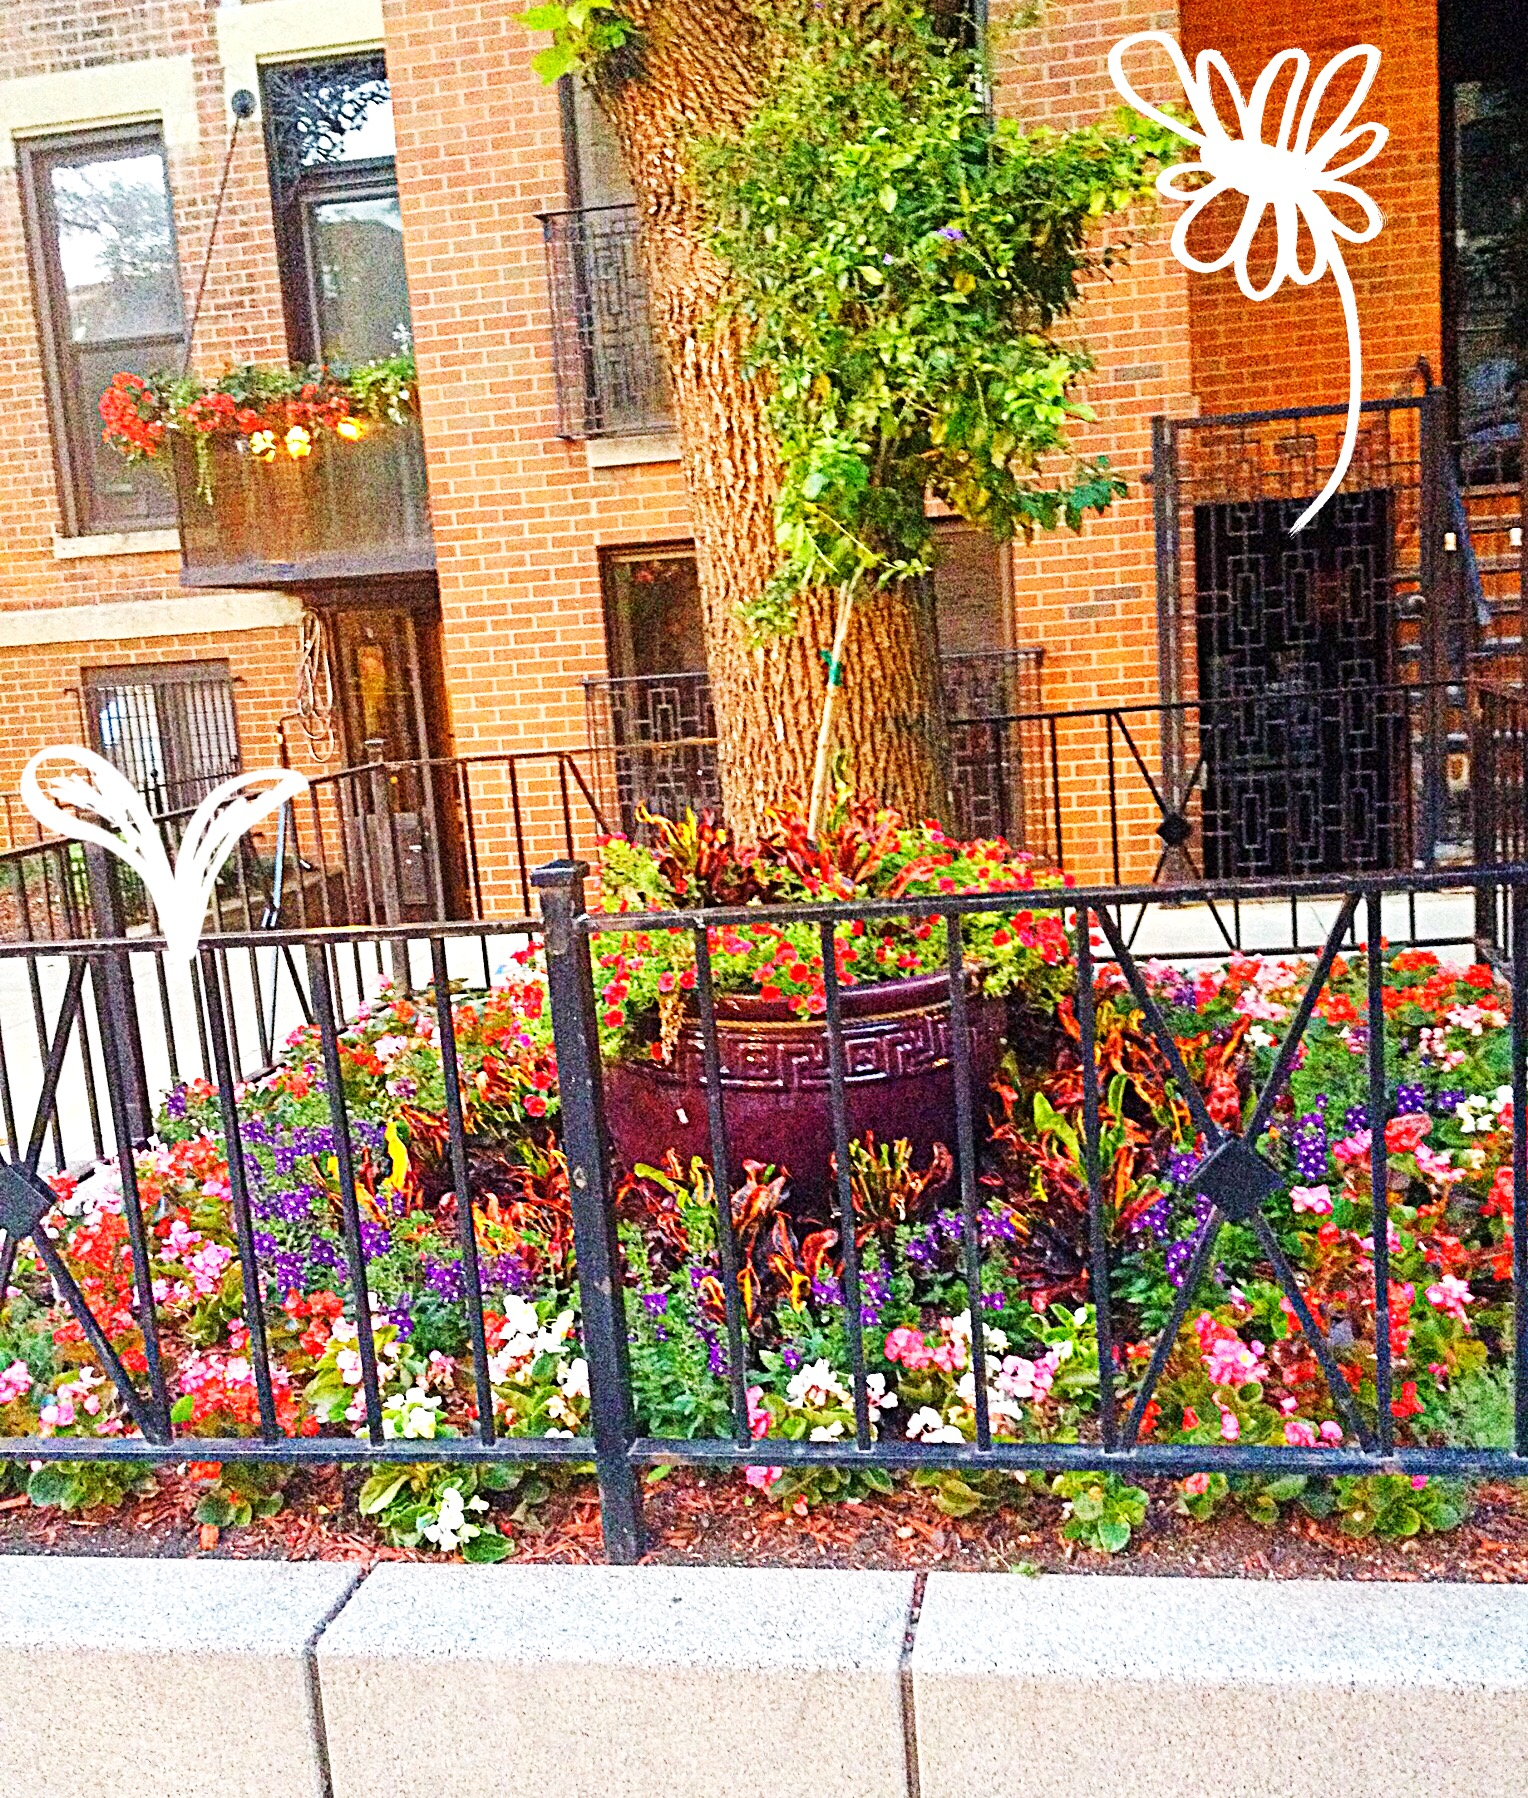 Flower plantings in Chicago's Old Town